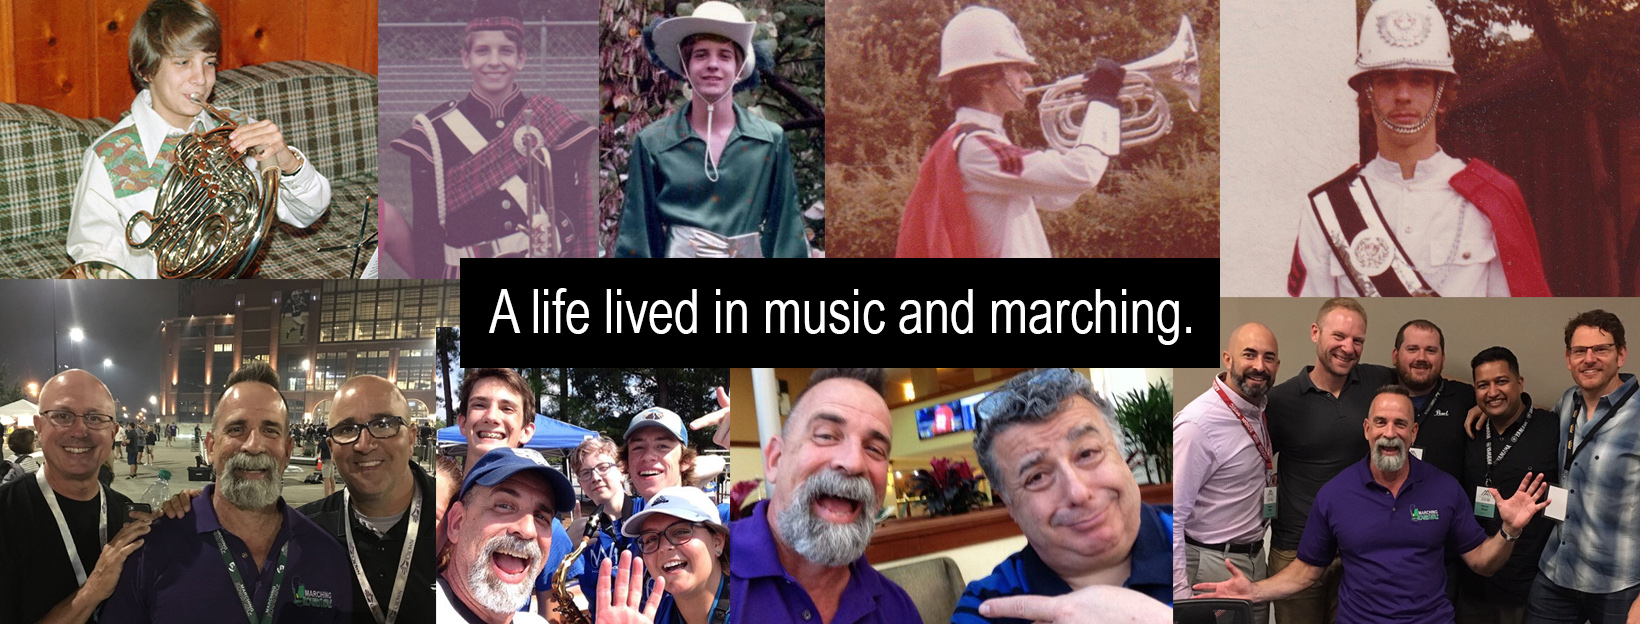 Tim Hinton's Life in Music and Marching Photo Collage